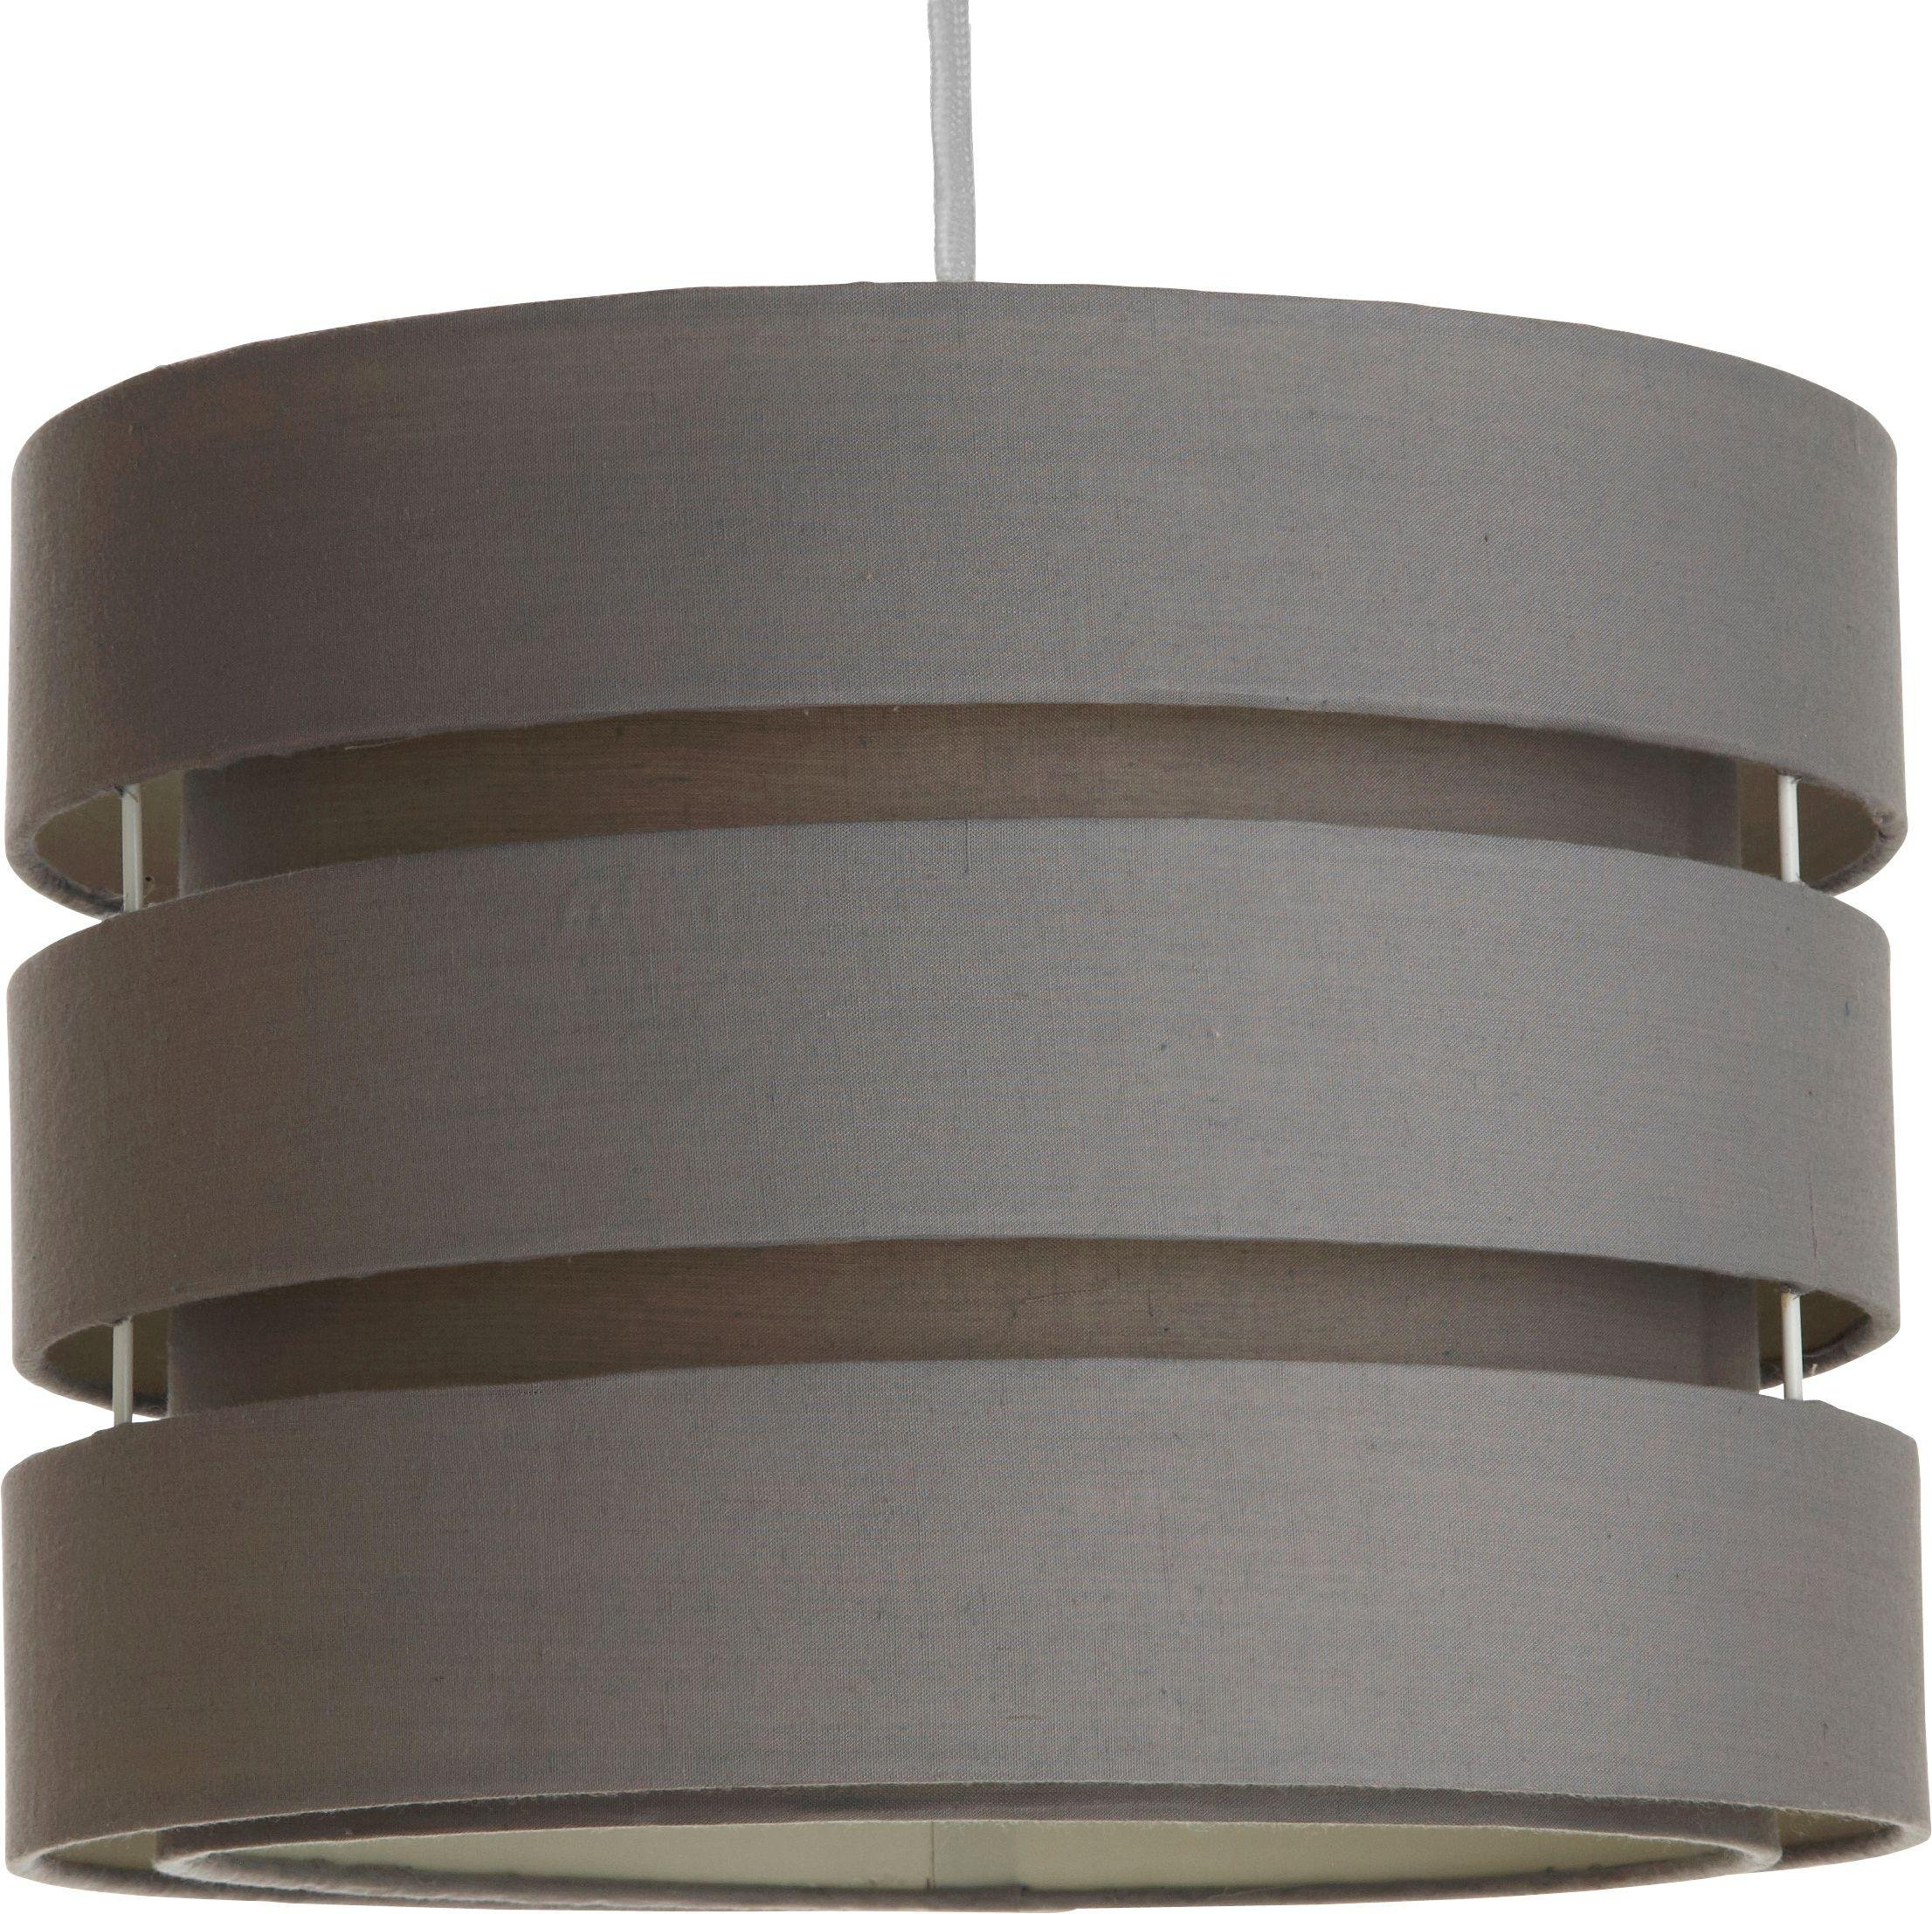 Argos Home 2 Tier Light Shade - Flint Grey